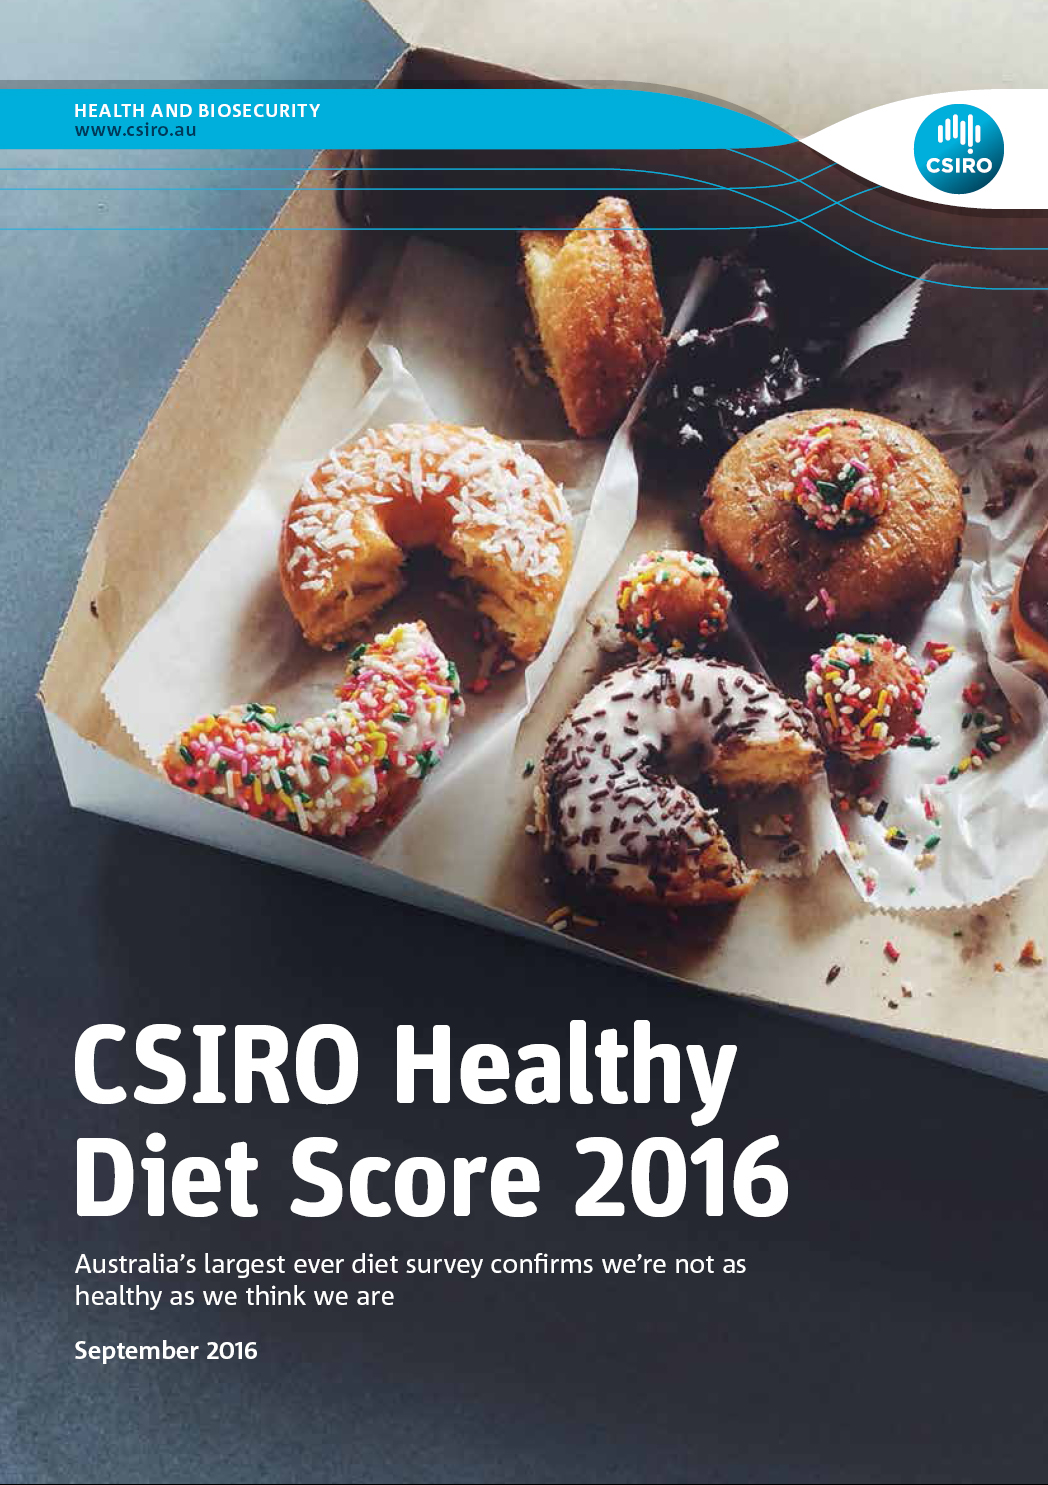 The cover of the CSIRO Healthy Diet Score 2016 report, showing a box donuts and cakes.